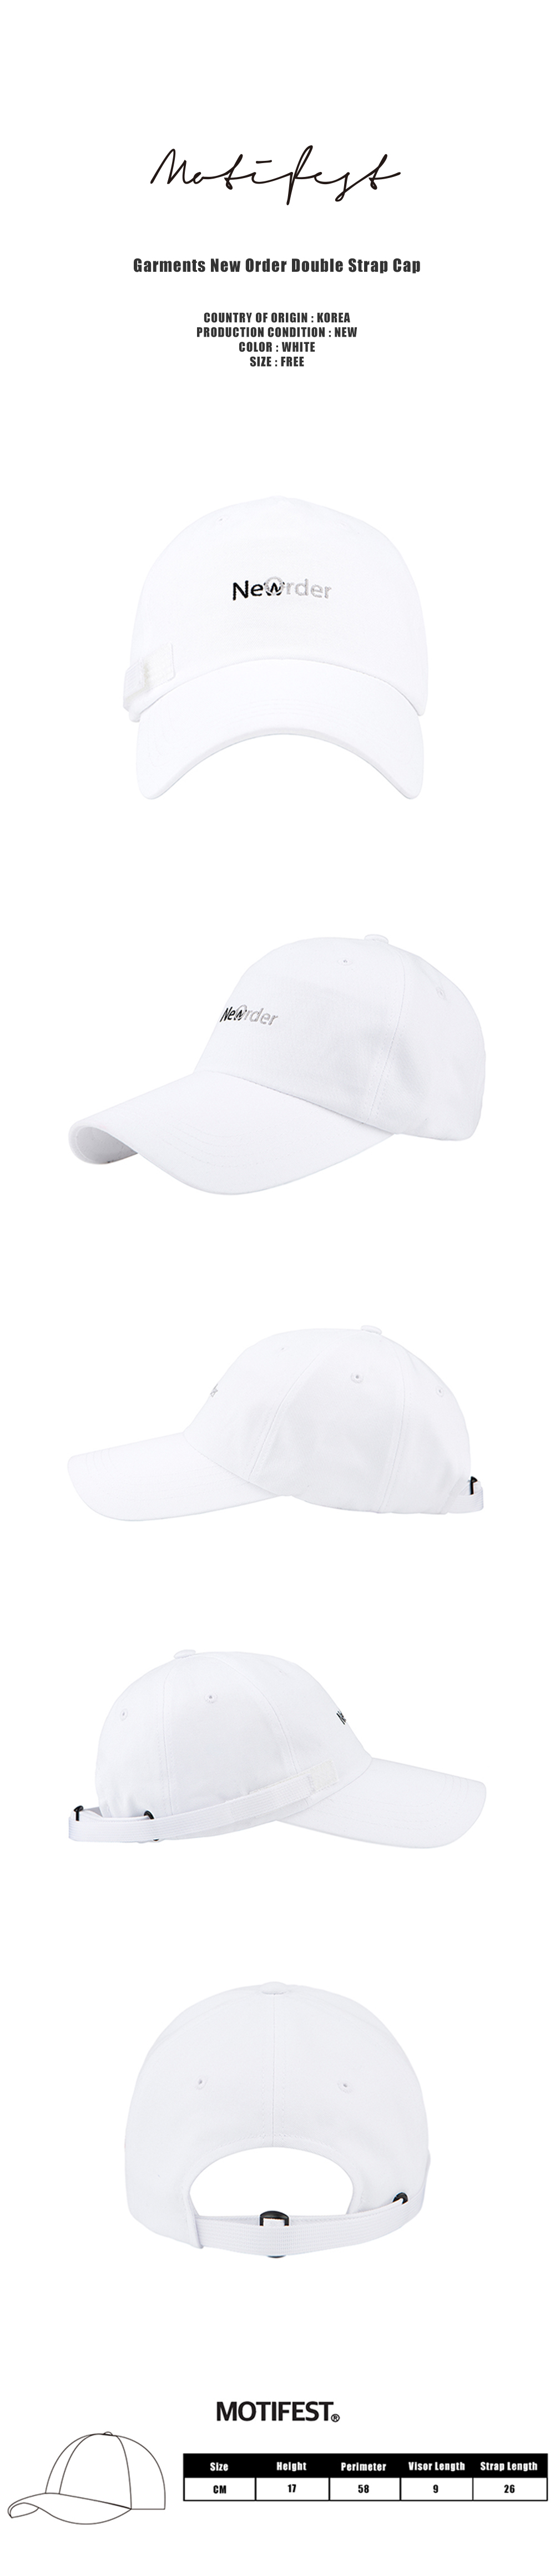 Garments New Order Double Strap Cap White-1000.jpg